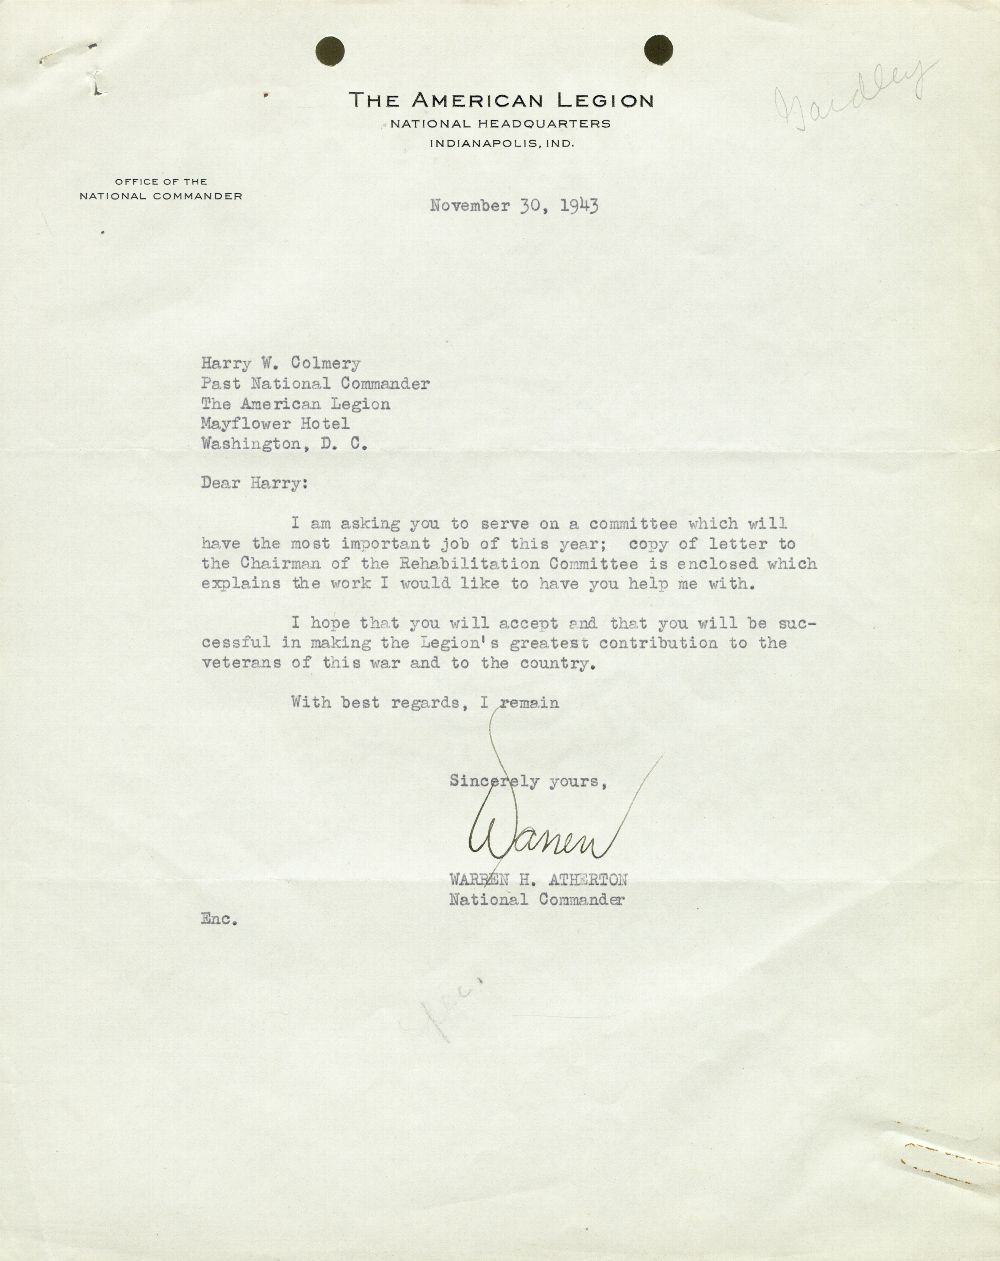 Warren H. Atherton to Harry W. Colmery